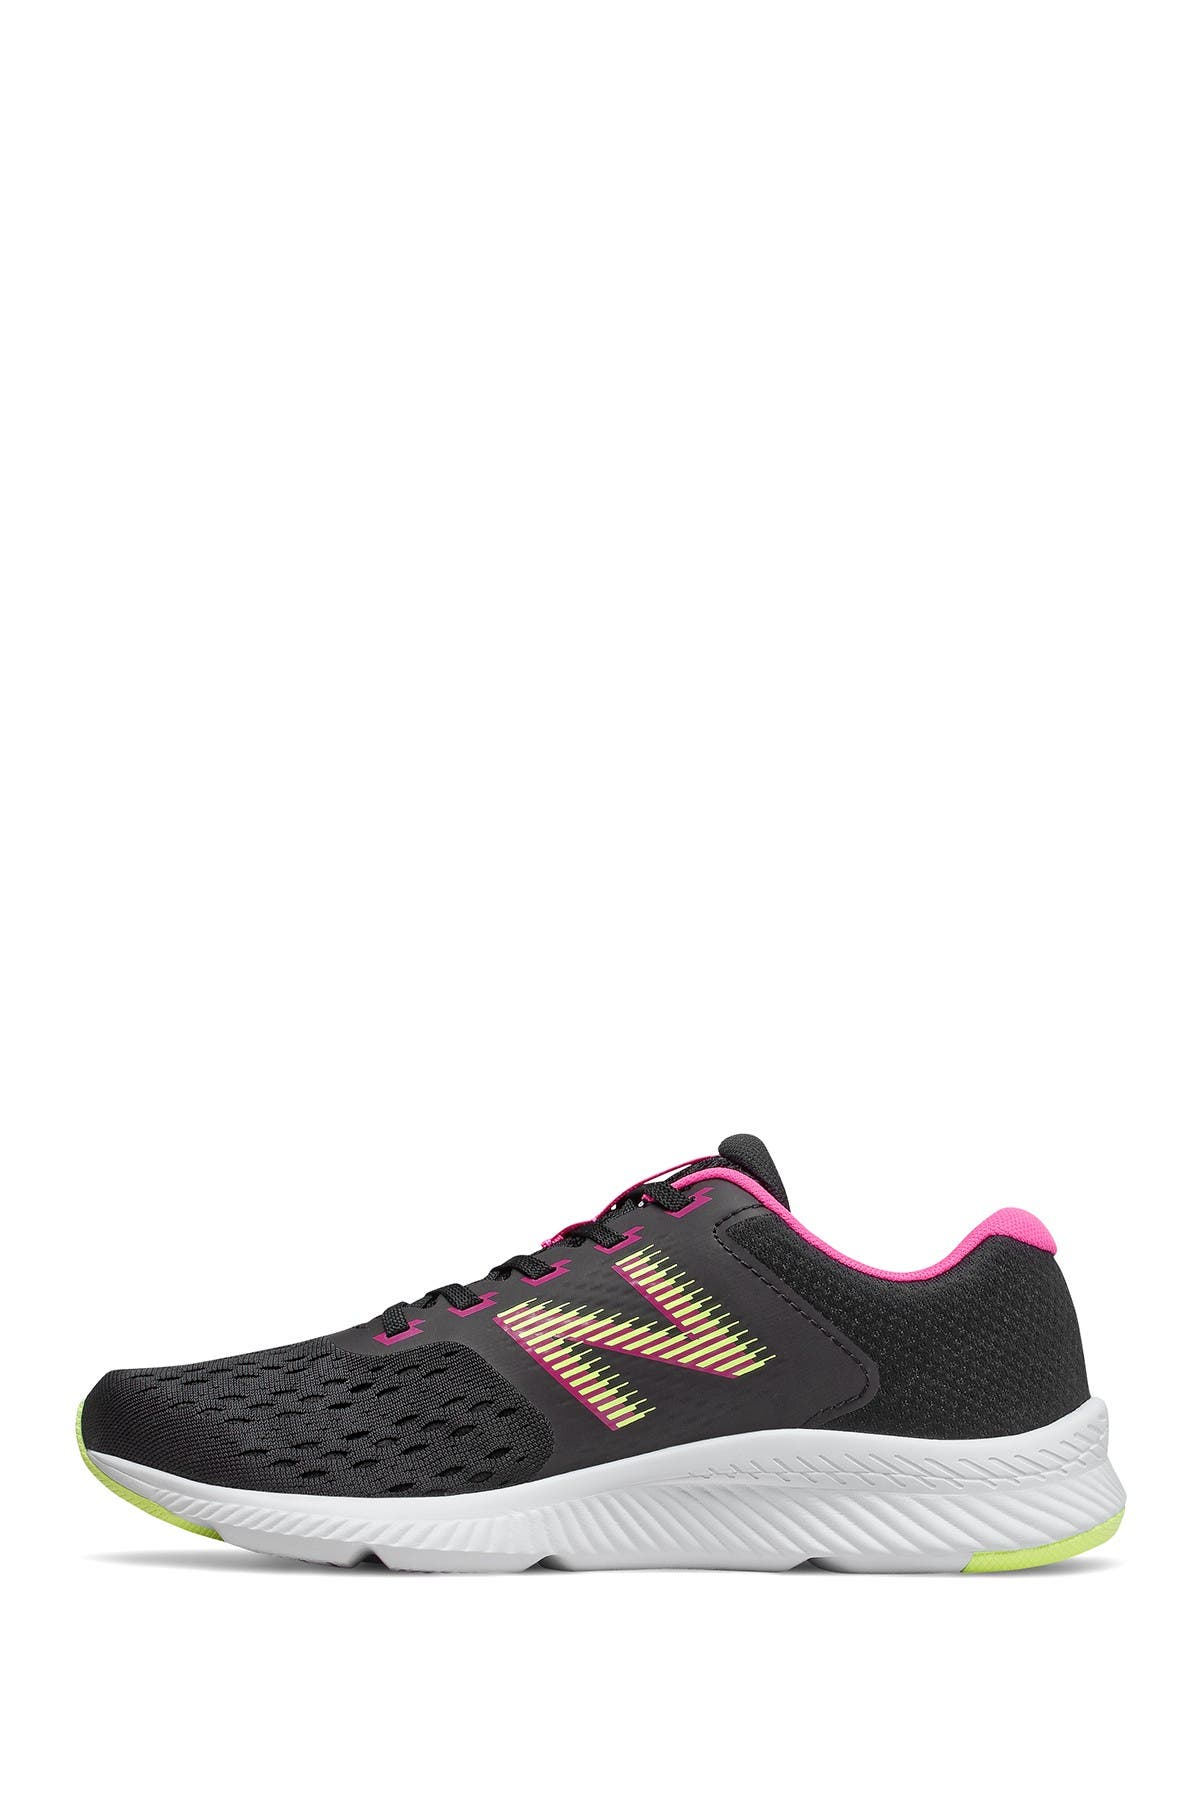 Image of New Balance Draft Athletic Sneaker